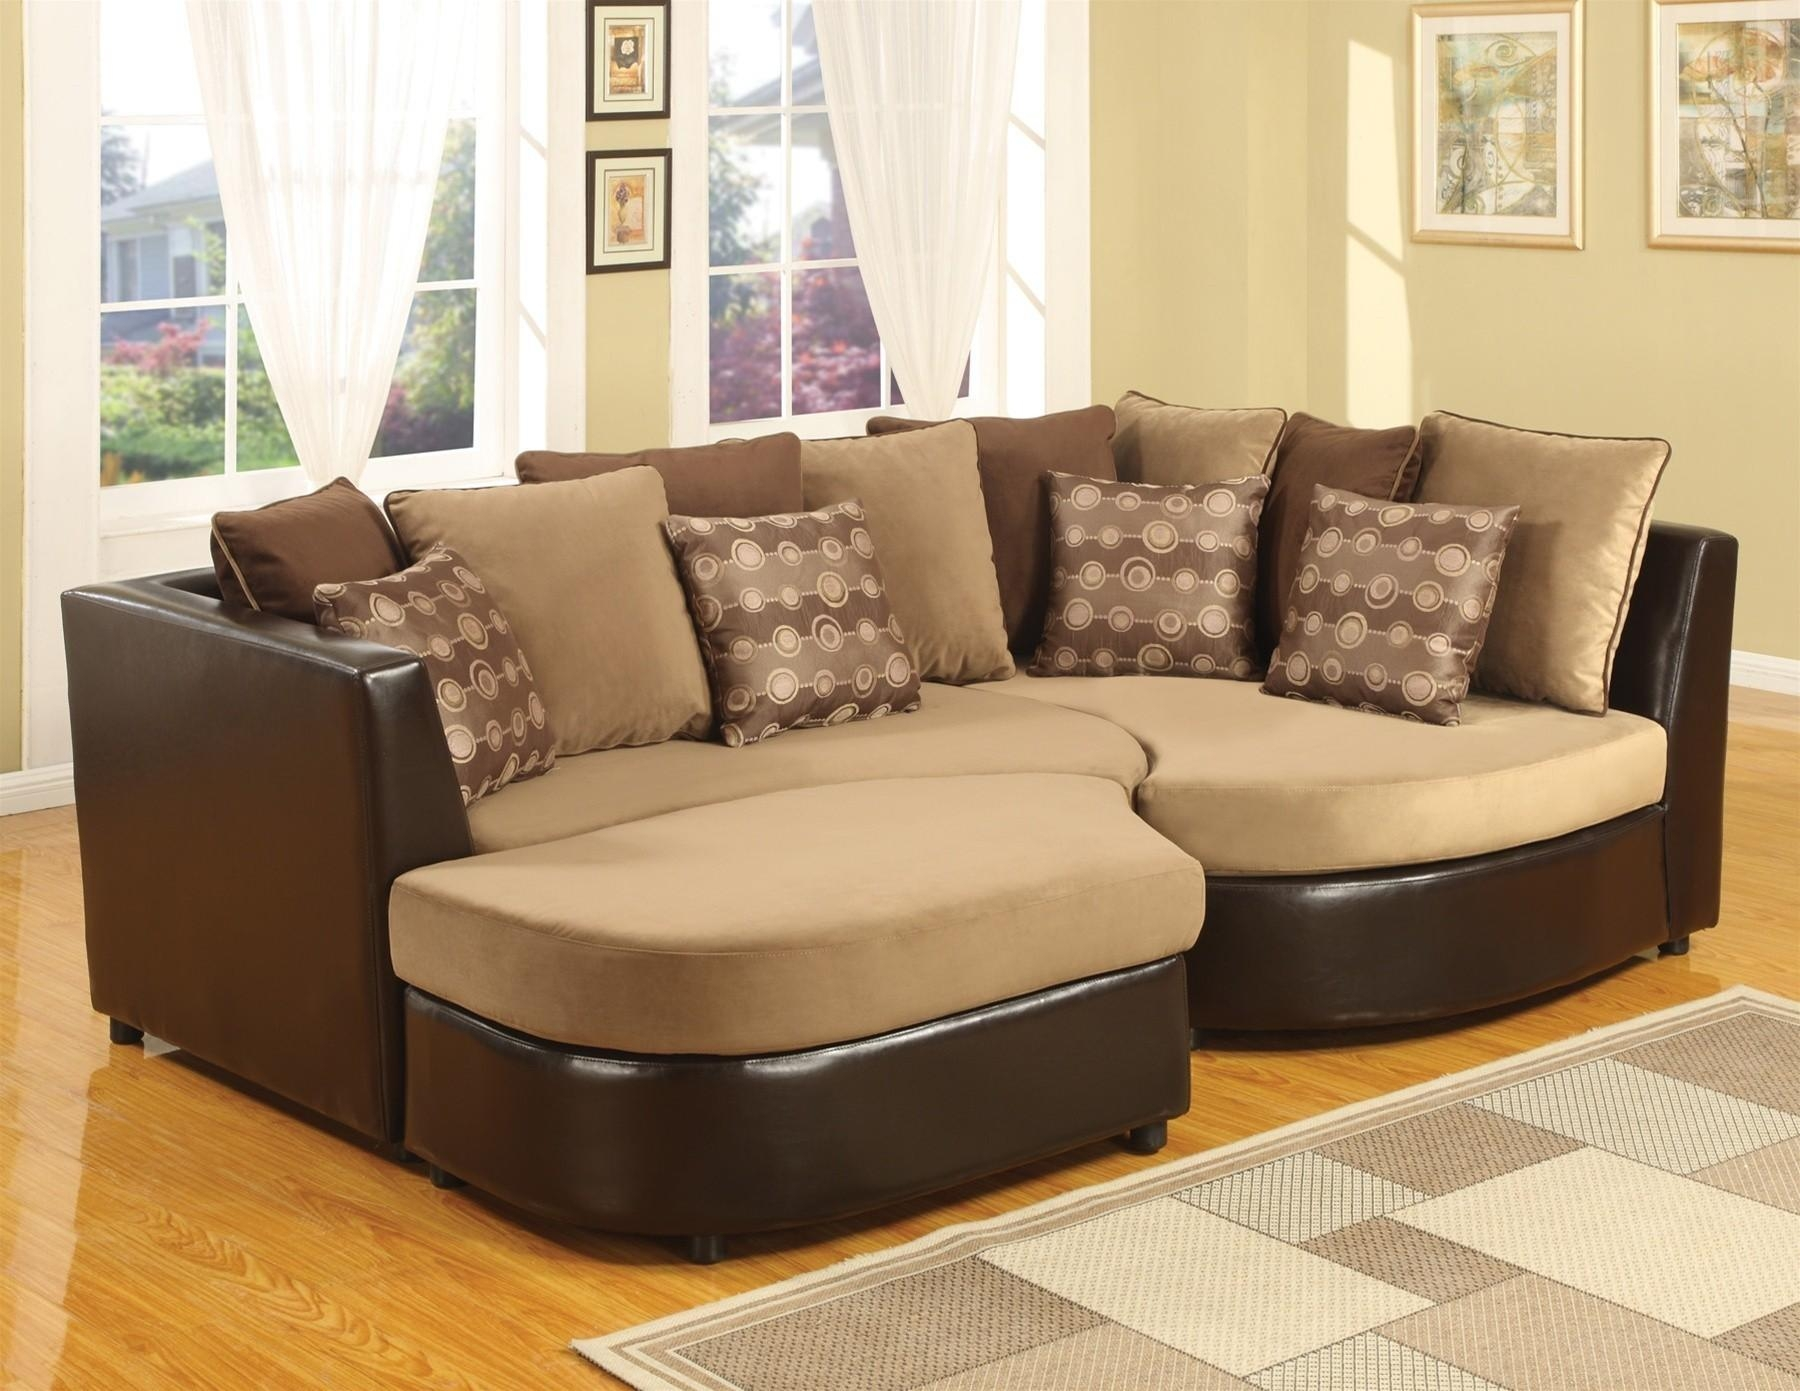 Gray Deep Seat Sectional With Large Ottoman And Chaise Lounge Of For Sectional With Large Ottoman (View 12 of 20)